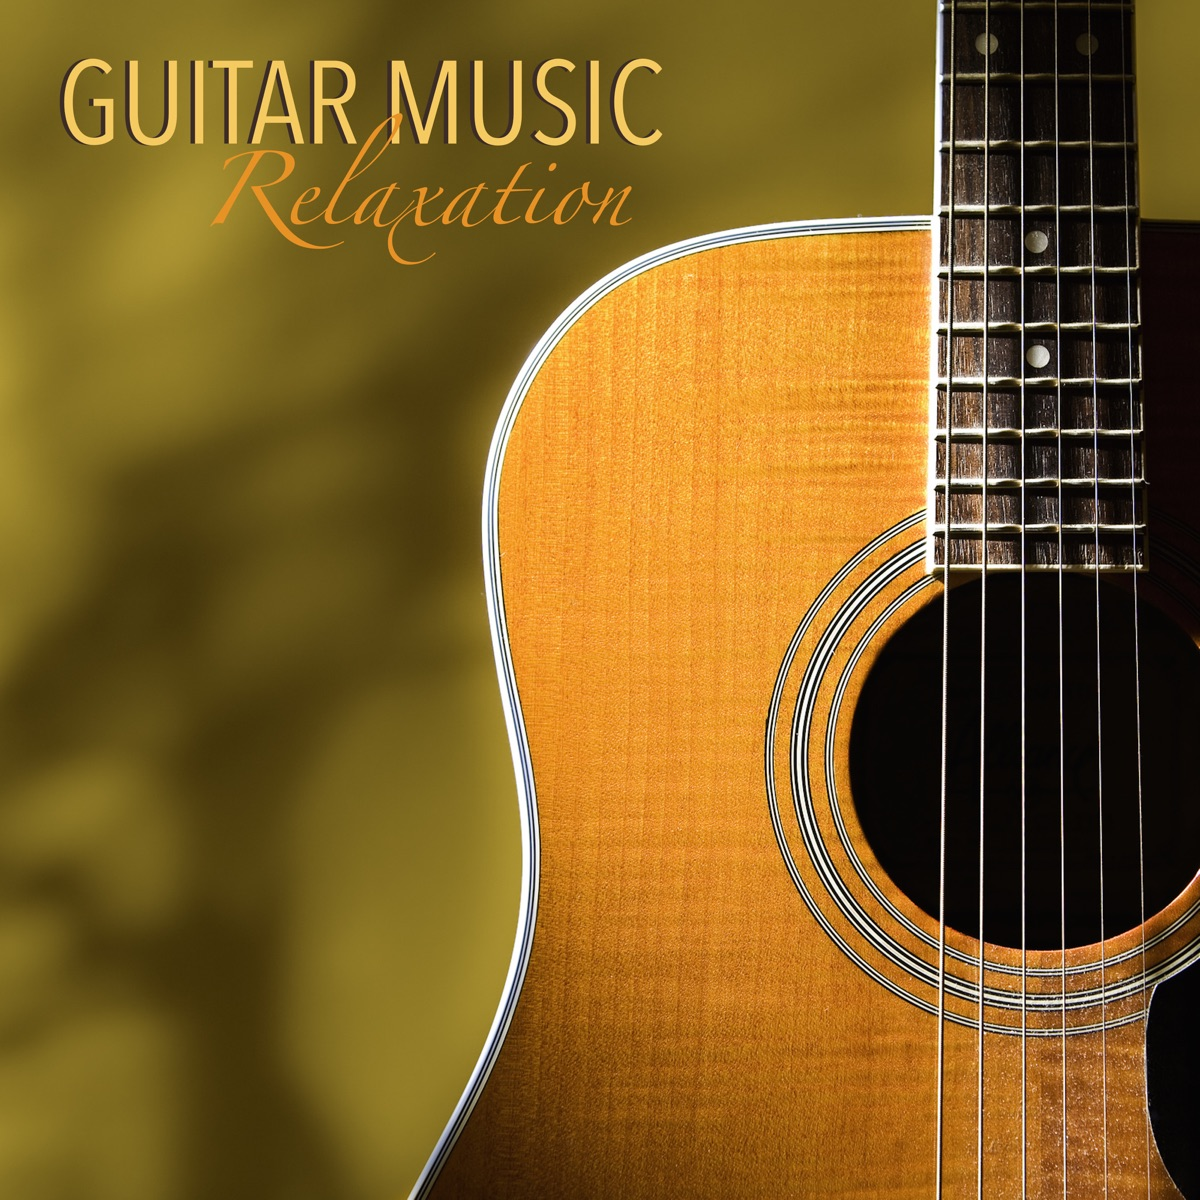 Guitar Music Relaxation - Easy Listening Music, Relaxing Guitar